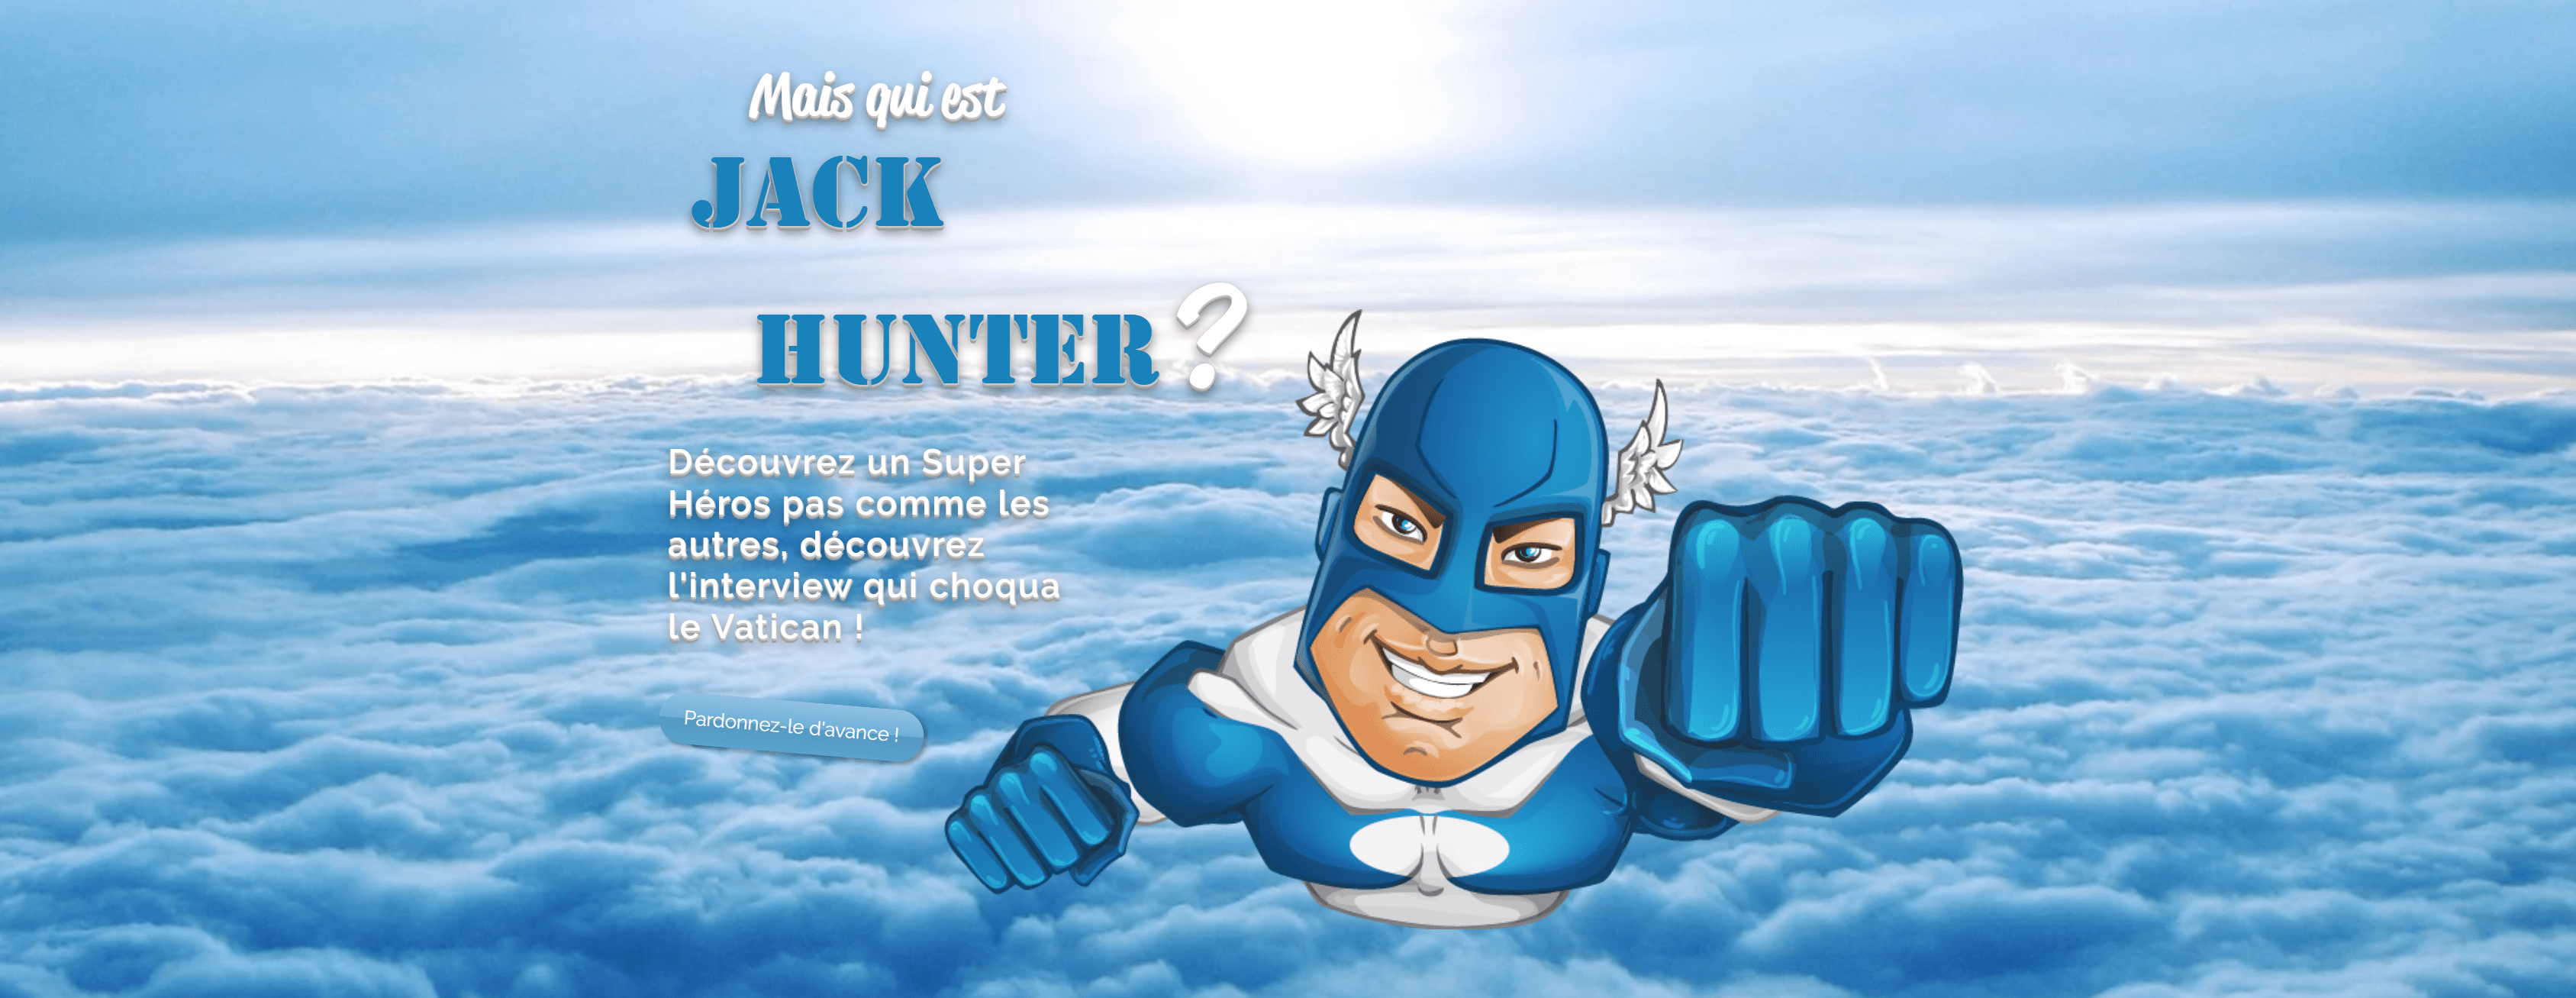 jack hunter site internet